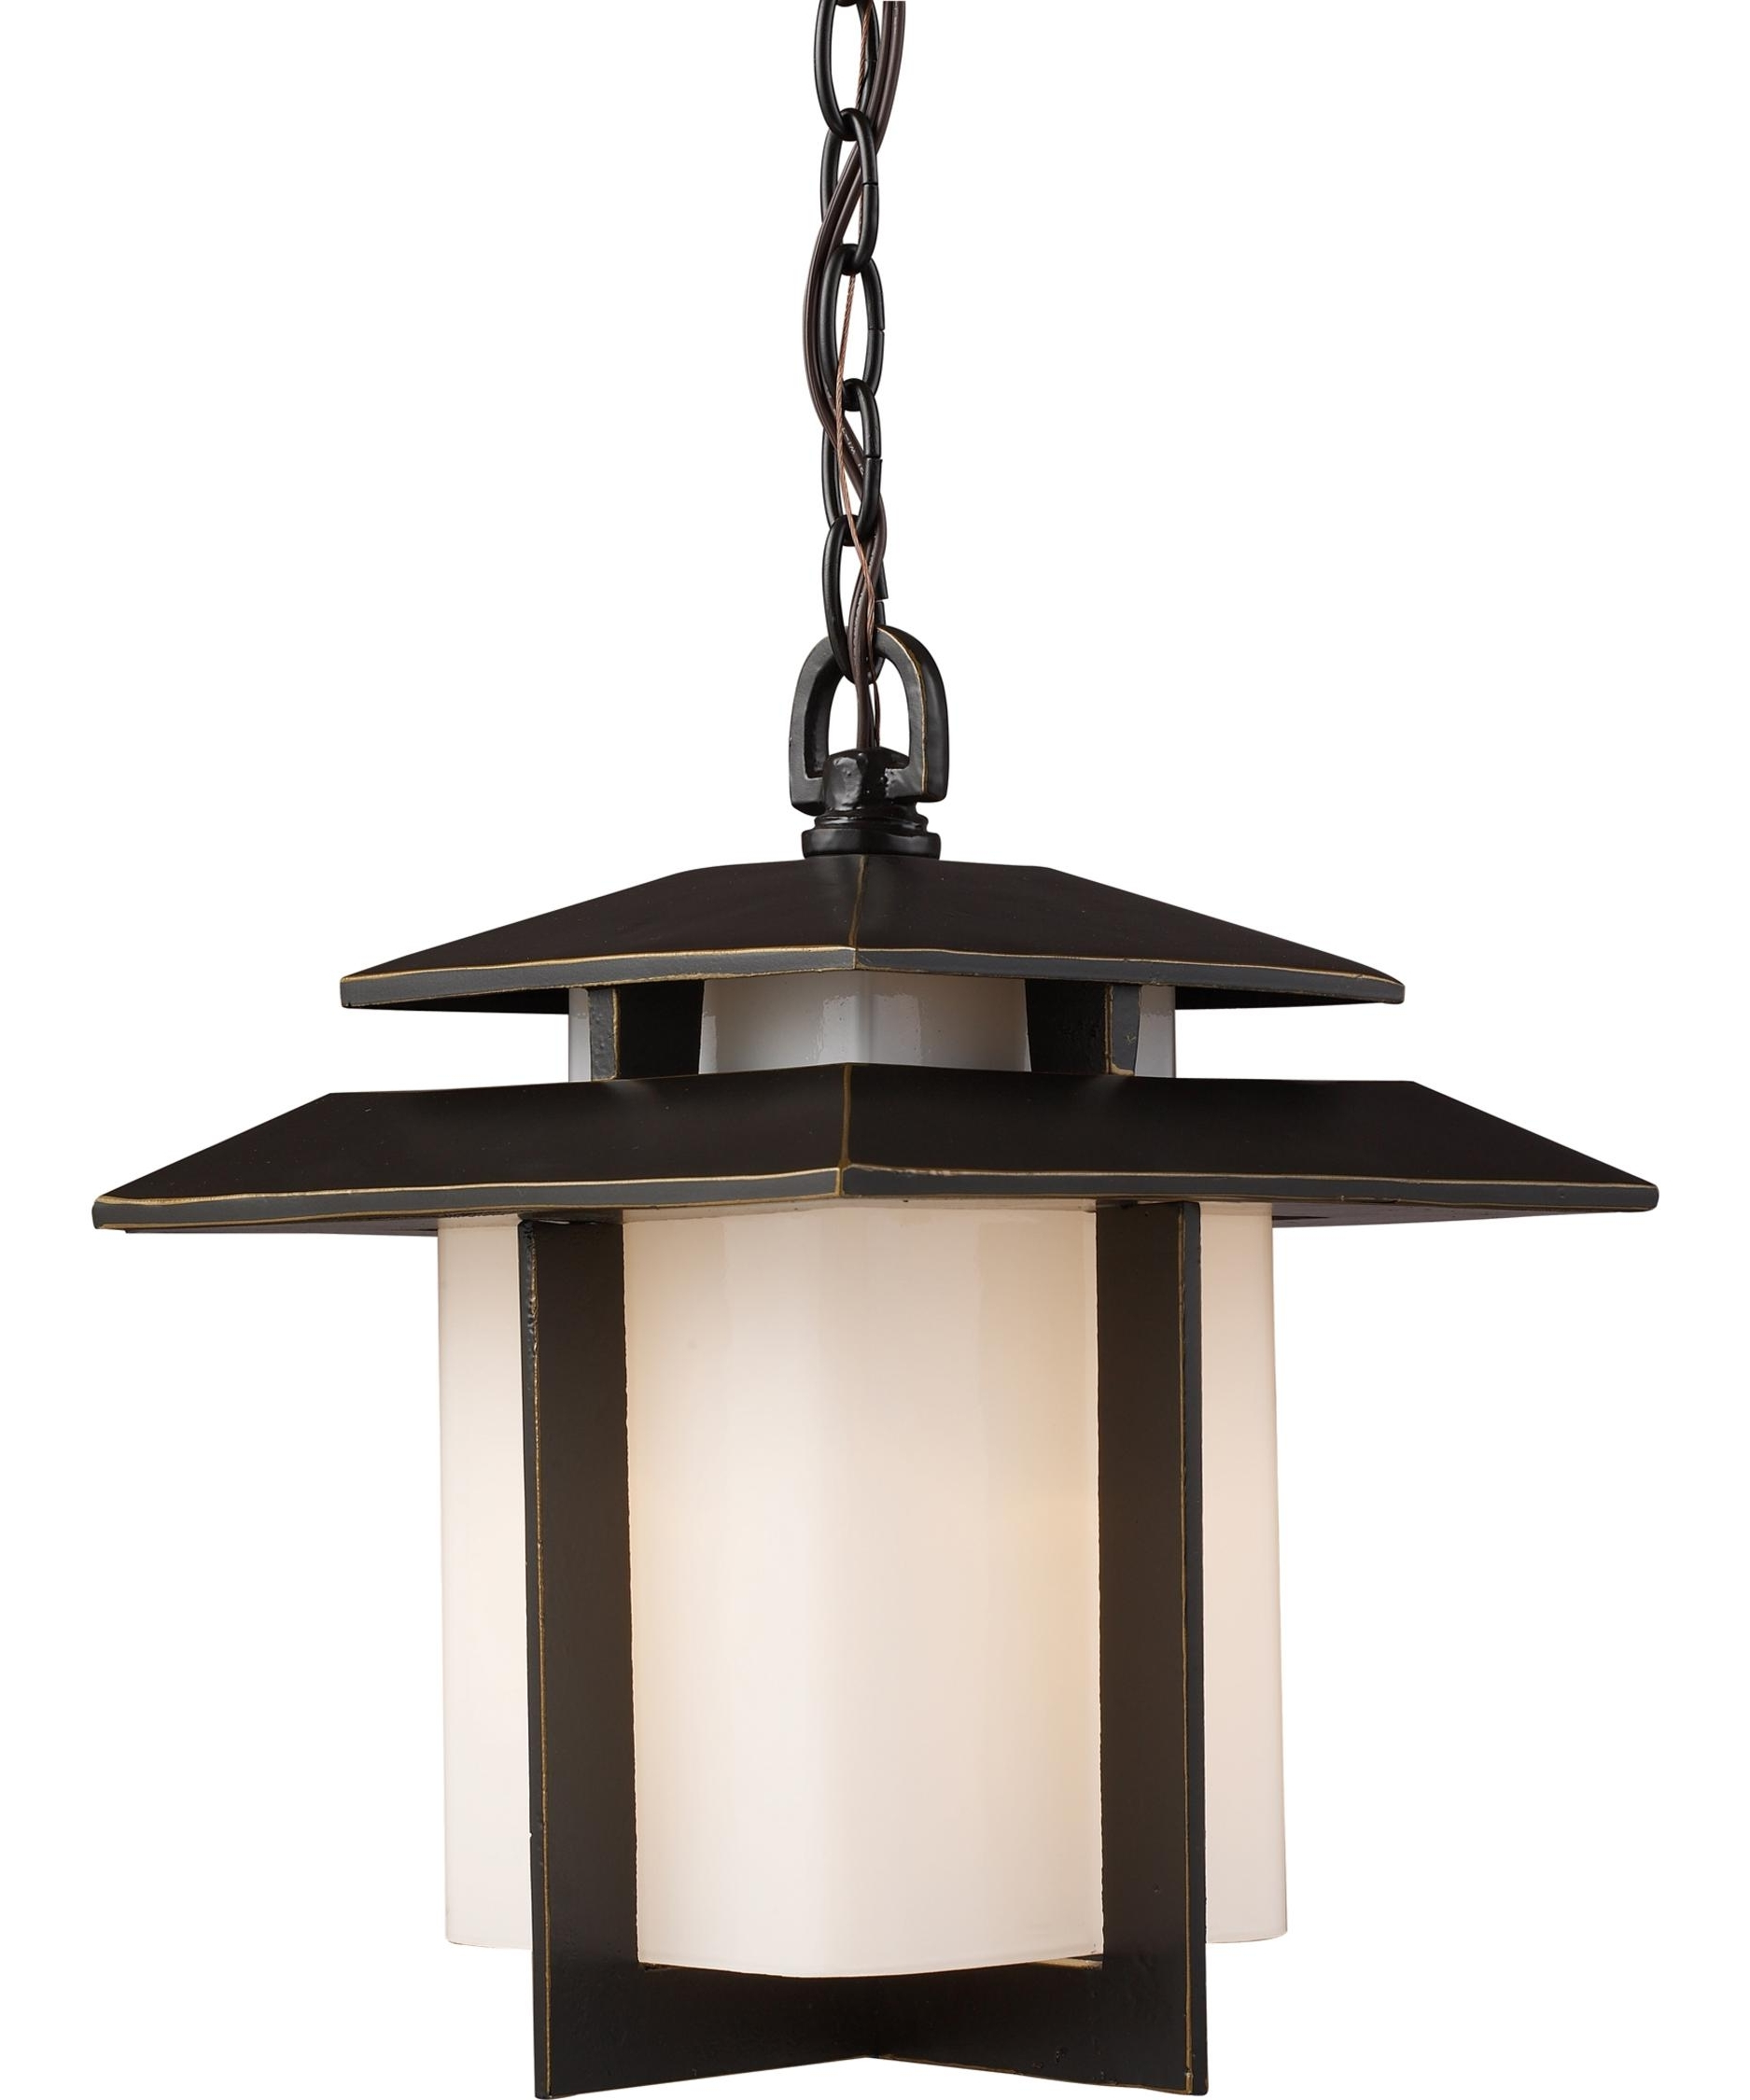 Light : Outdoor Lighting Ideas Without Electricity Exterior Fixtures Throughout Most Popular Modern Outdoor Light Fixtures At Home Depot (View 8 of 20)